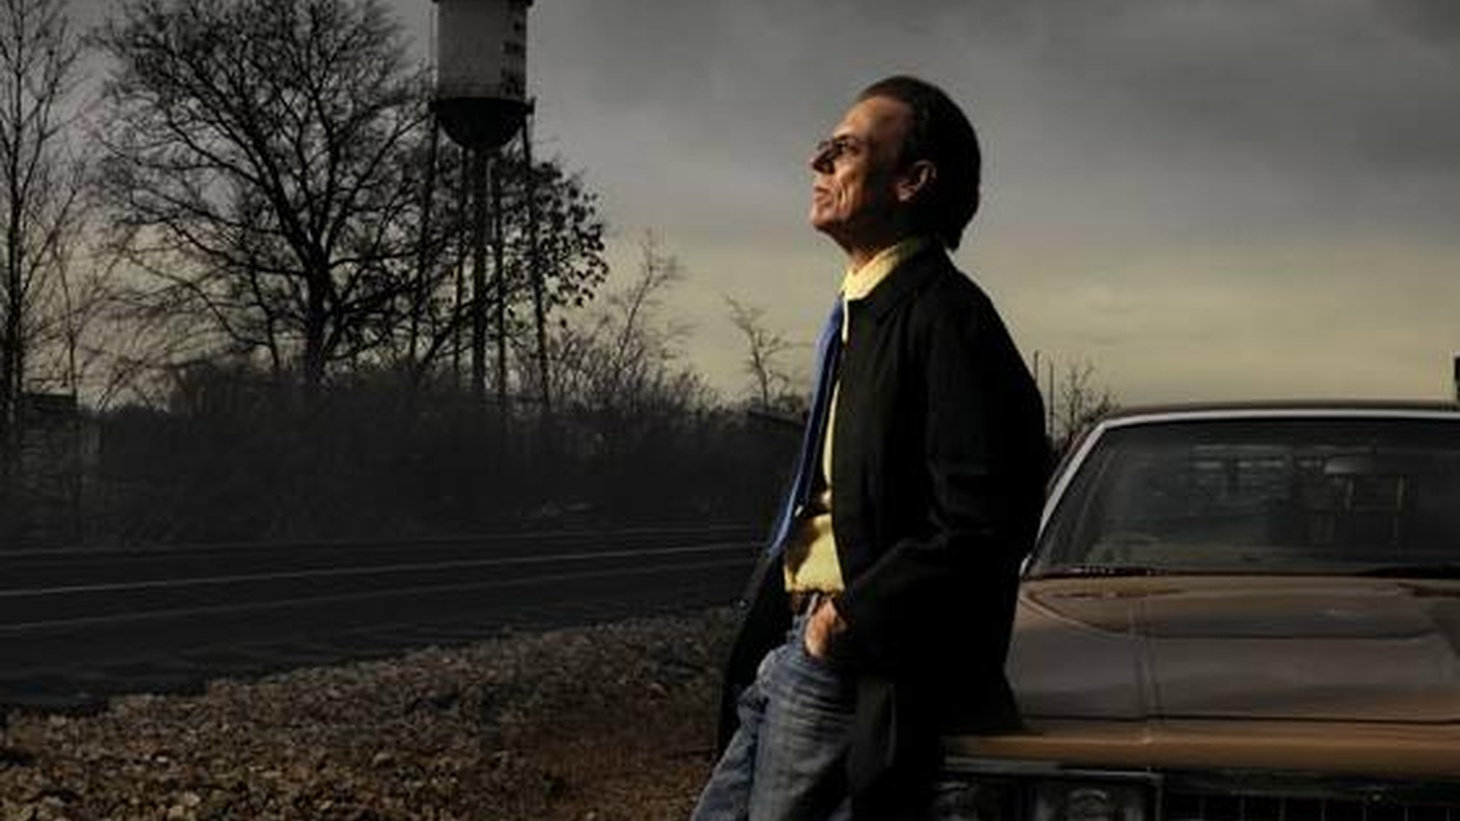 """Many singers have covered the work of John Hiatt -- including Bonnie Raitt, Iggy Pop and The Neville Brothers -- and he's contributed to endless recordings, from Rosanne Cash to Ry Cooder. He's released a steady stream of albums and we're happy to spotlight his new work. From his forthcoming release The Open Road, Today's Top Tune is the title track, """"The Open Road."""""""